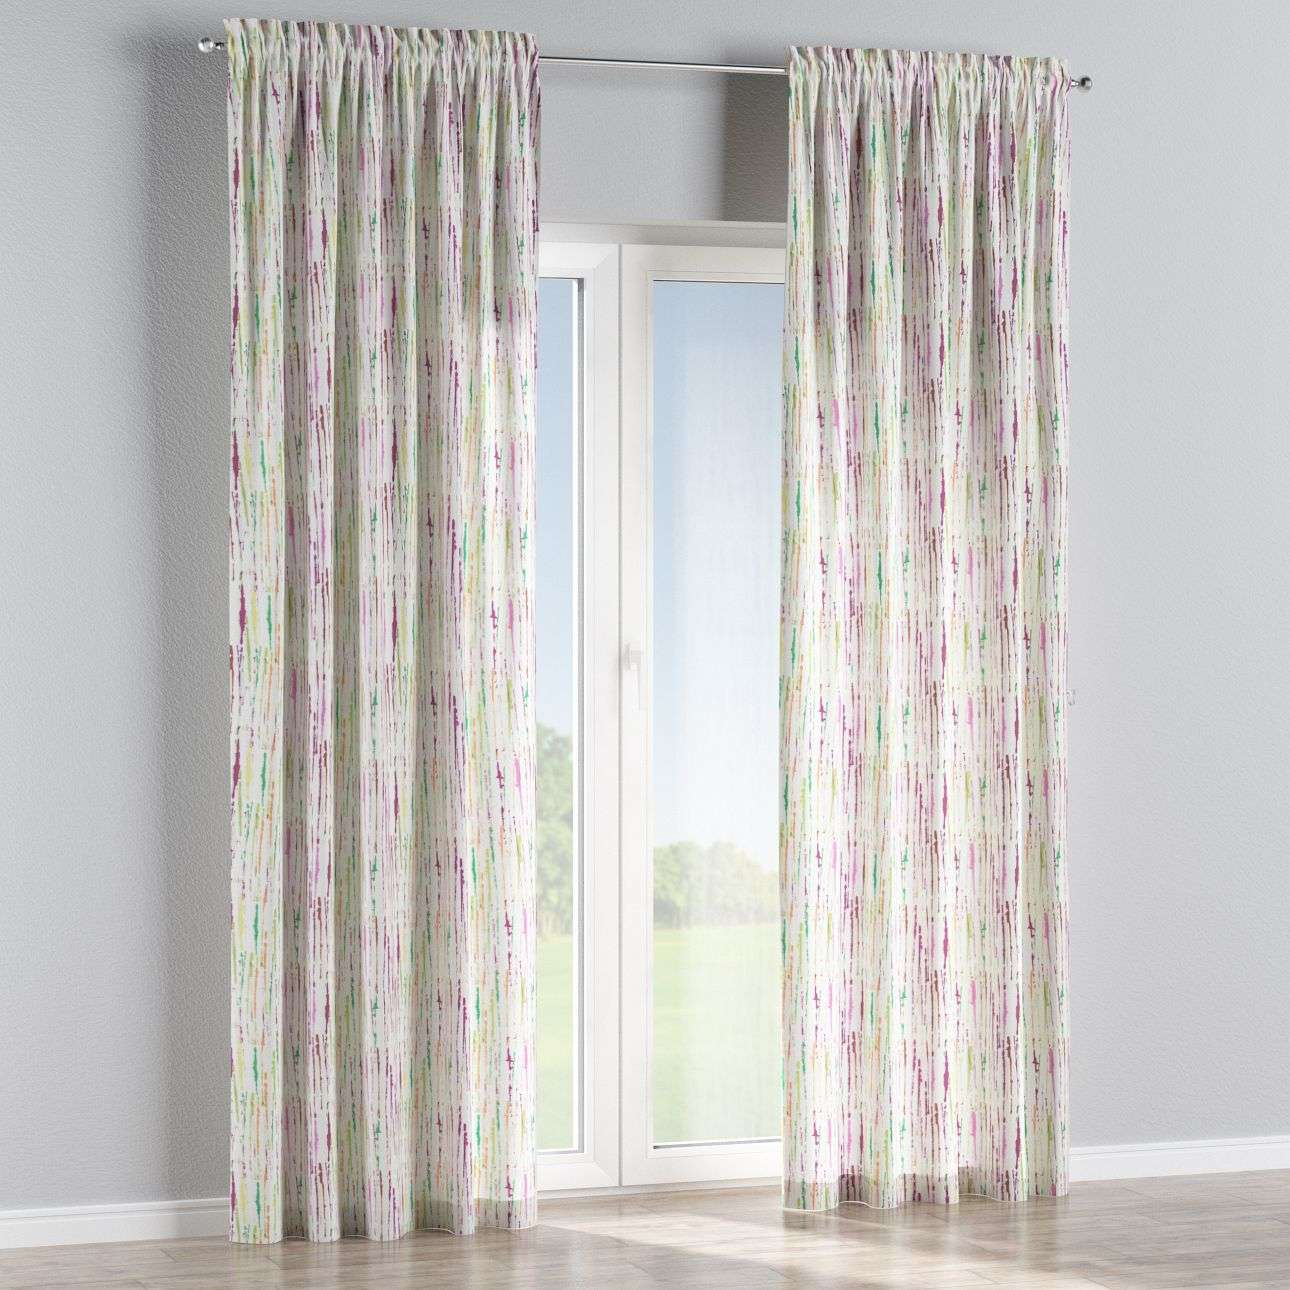 Slot and frill curtains 130 x 260 cm (51 x 102 inch) in collection Aquarelle, fabric: 140-72